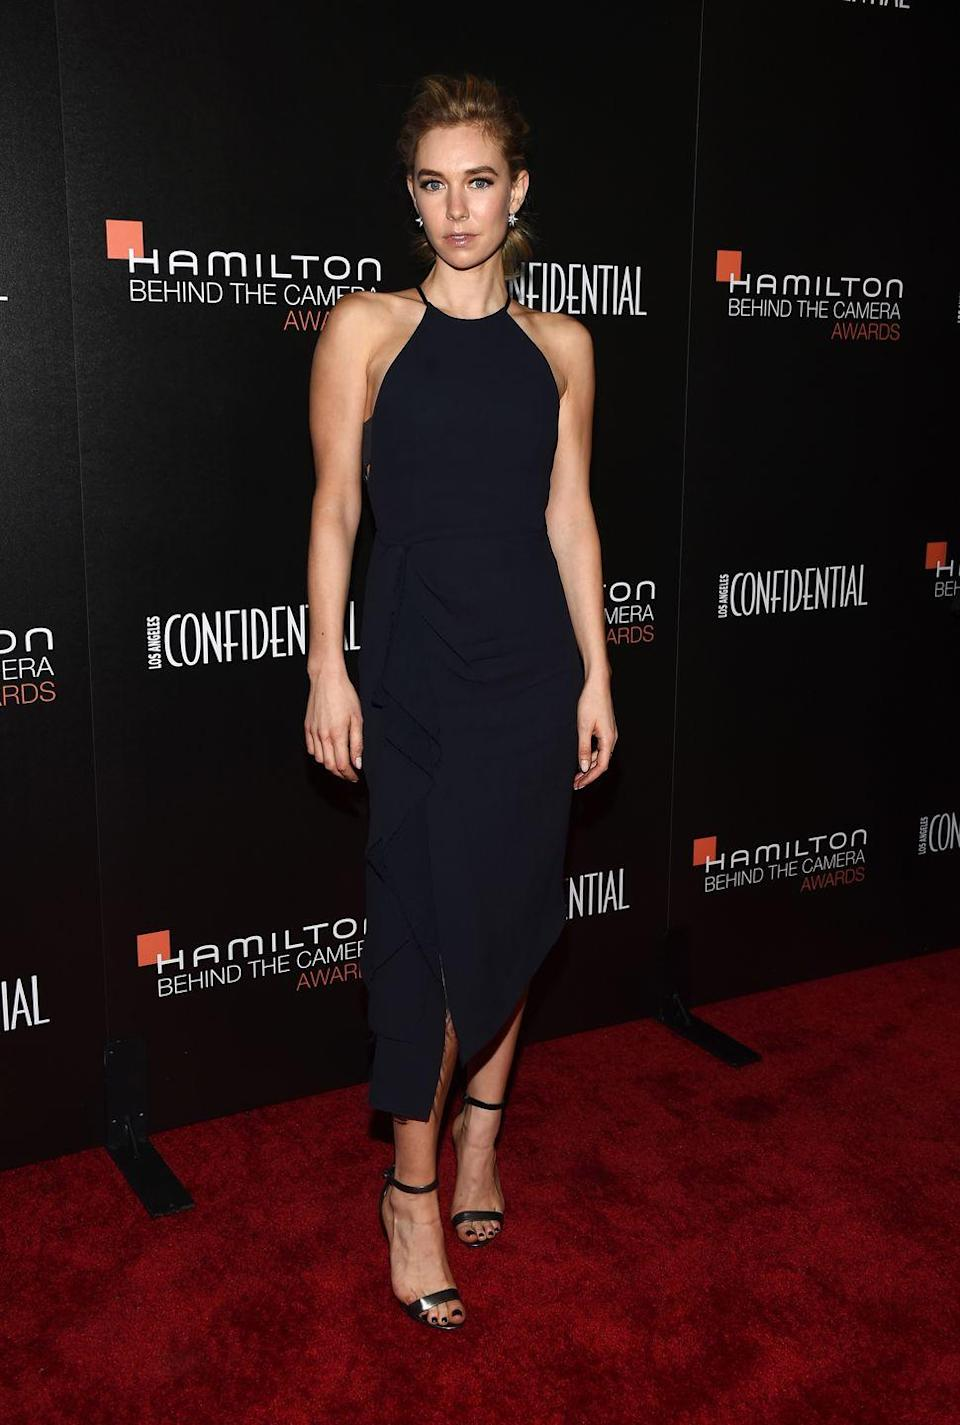 <p>Kirby wears a chic dress on the red carpet for the Hamilton Behind the Camera Awards.</p>